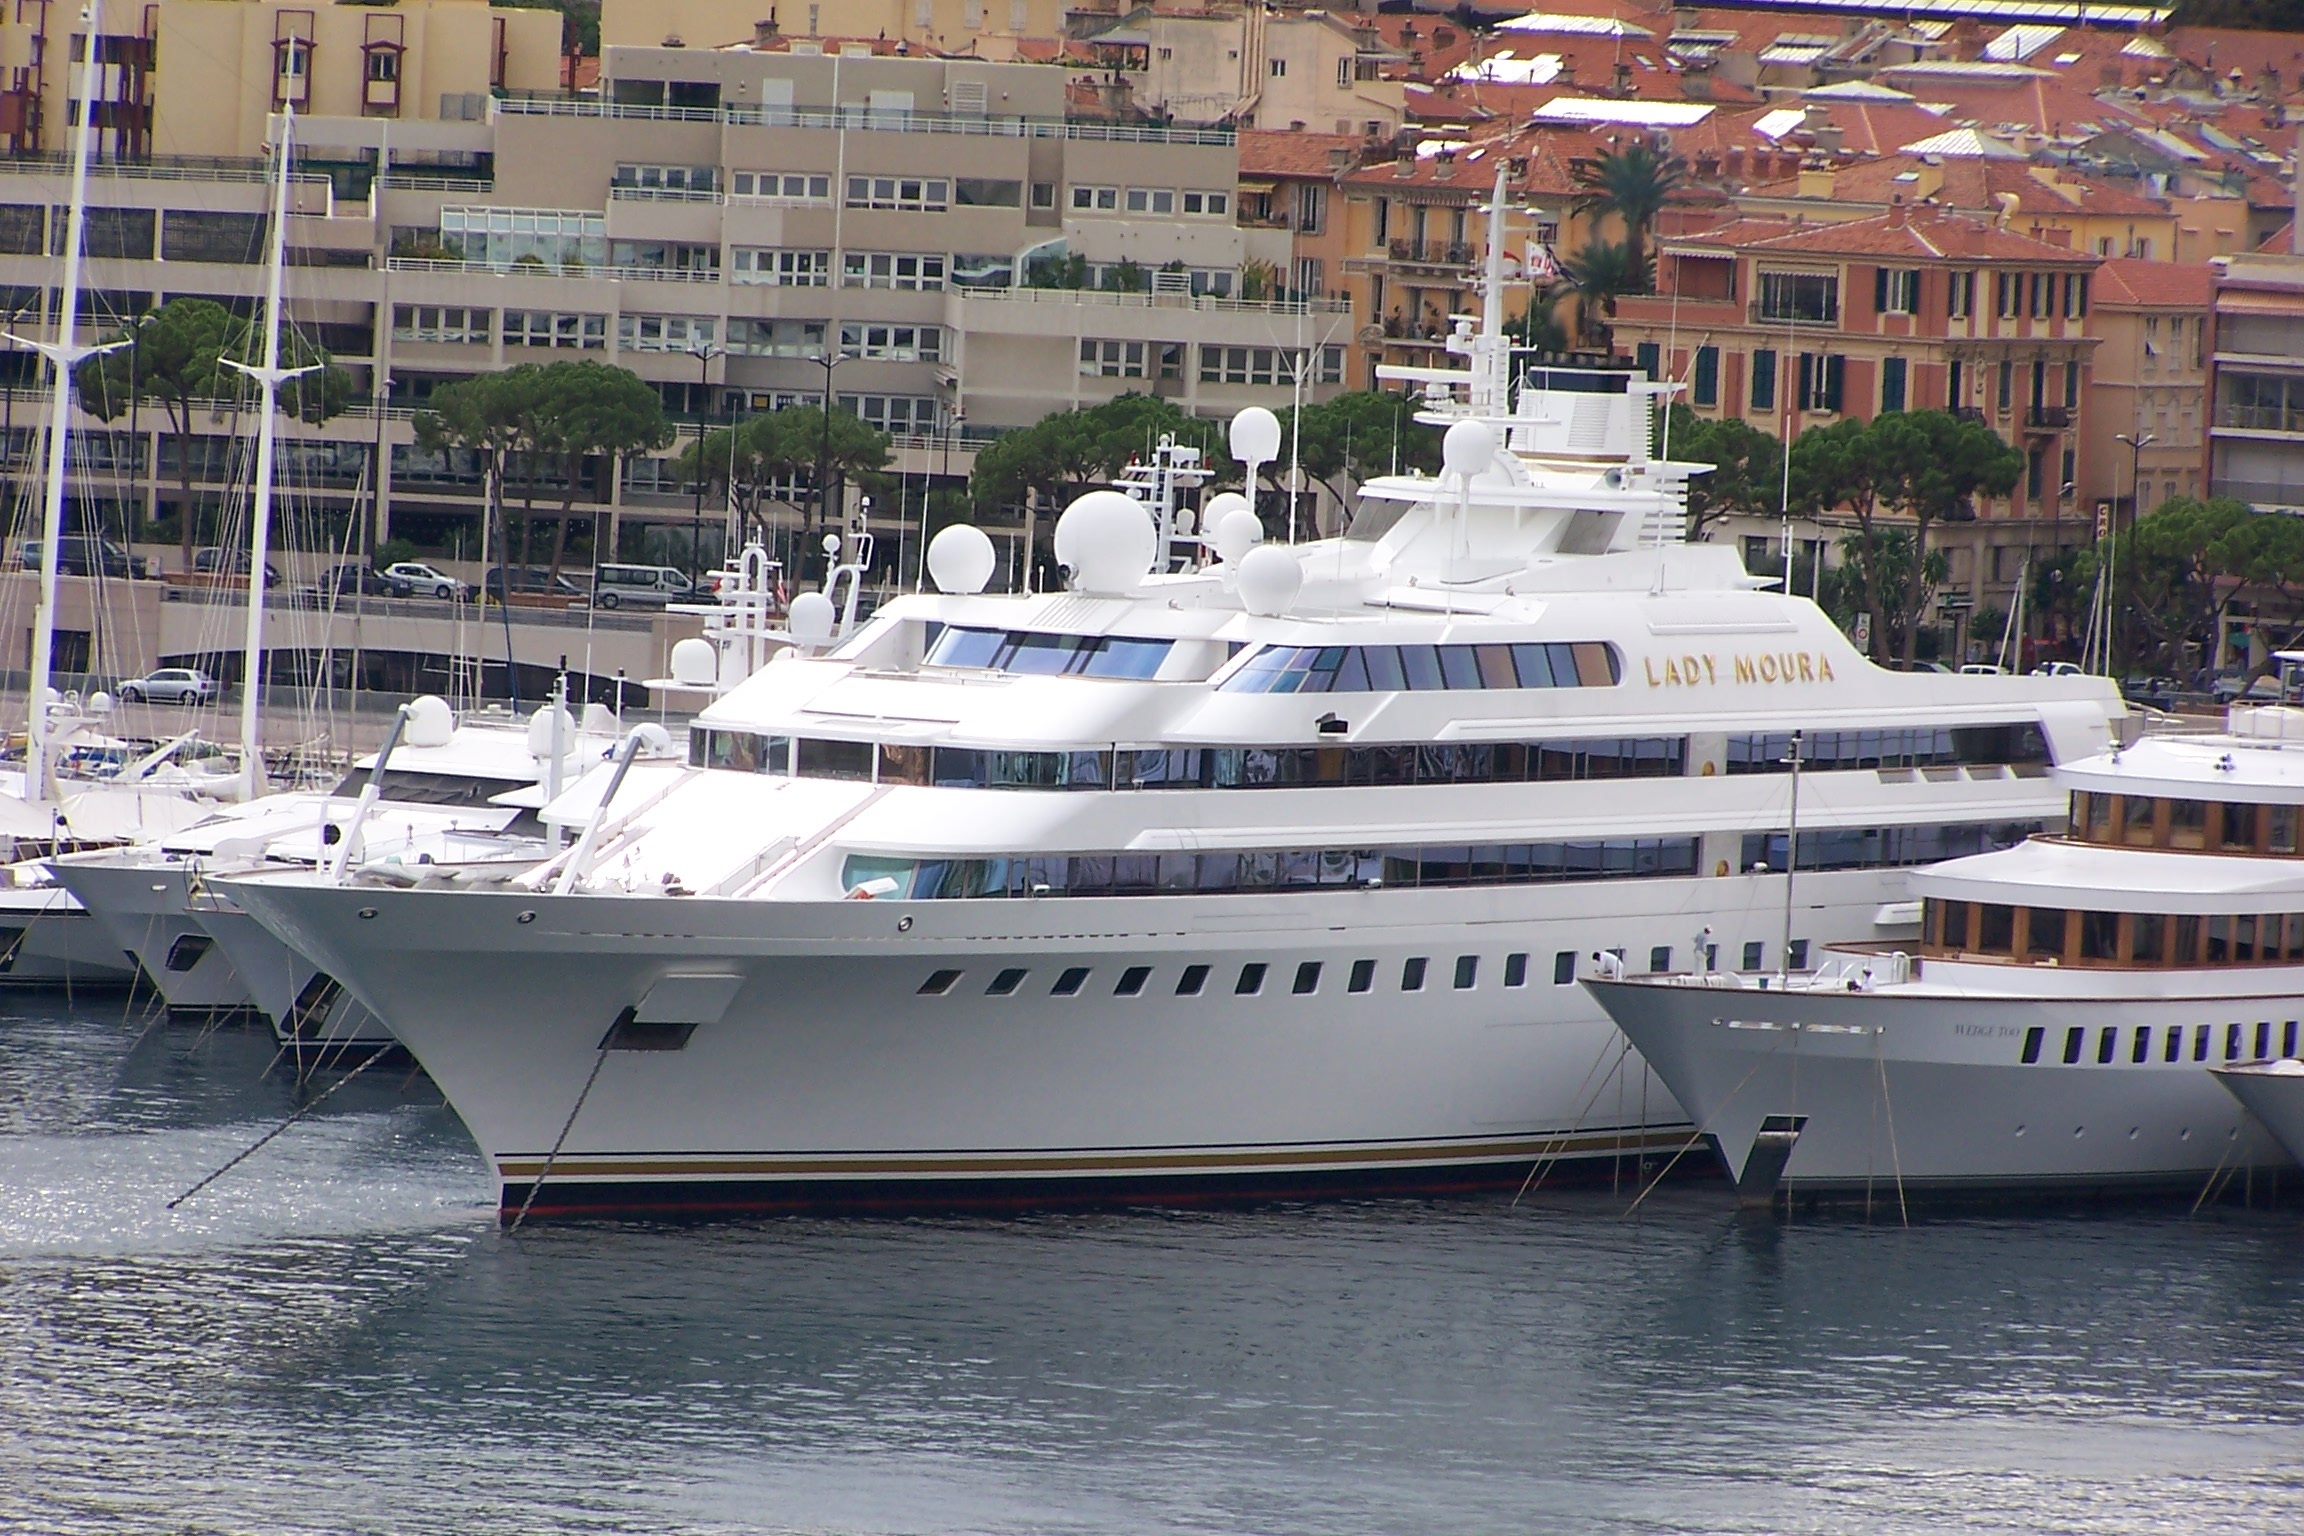 Super Yachts, Boat, Personal, Ship, Stand, HQ Photo